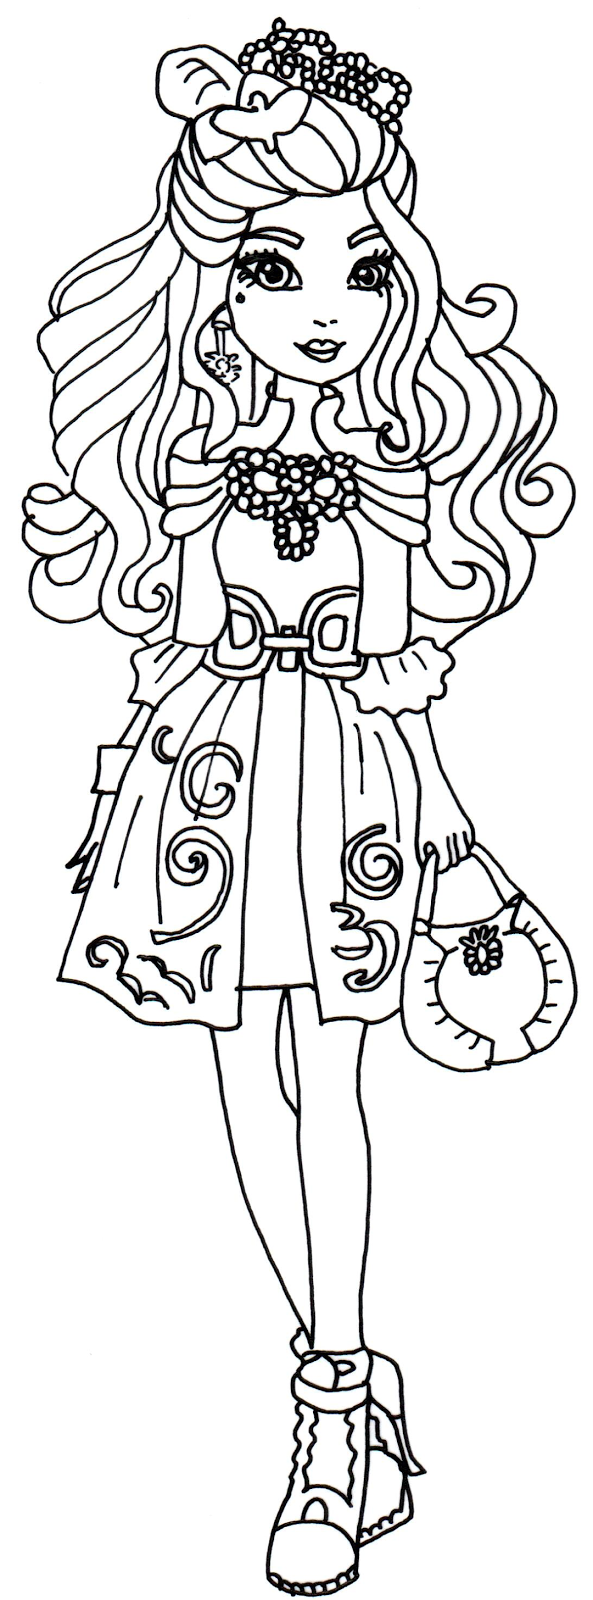 Free Printable Ever After High Coloring Pages: Darling